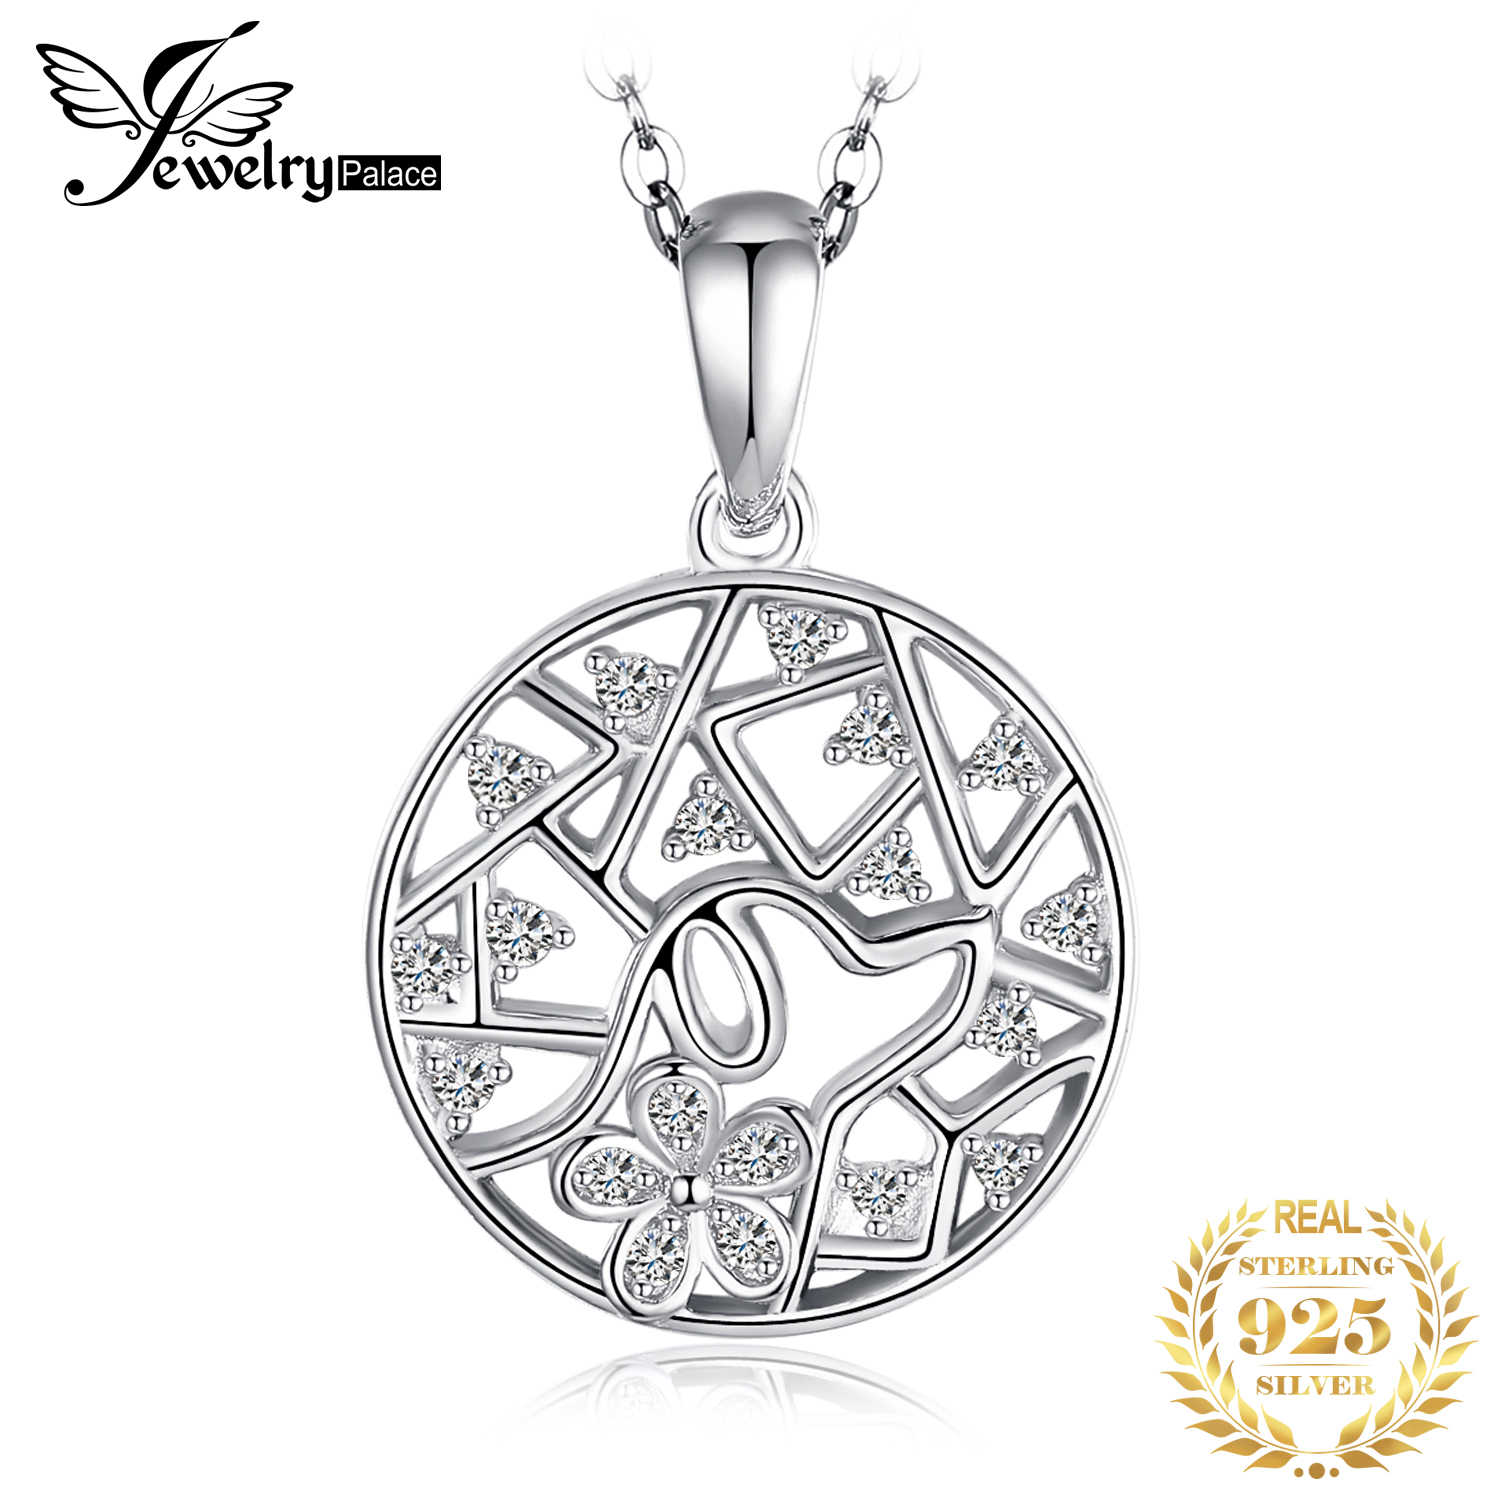 JPalace Leaf 925 Silver Pendant Necklace 925 Sterling Silver Choker Statement Necklace Women Silver 925 Jewelry Without Chain